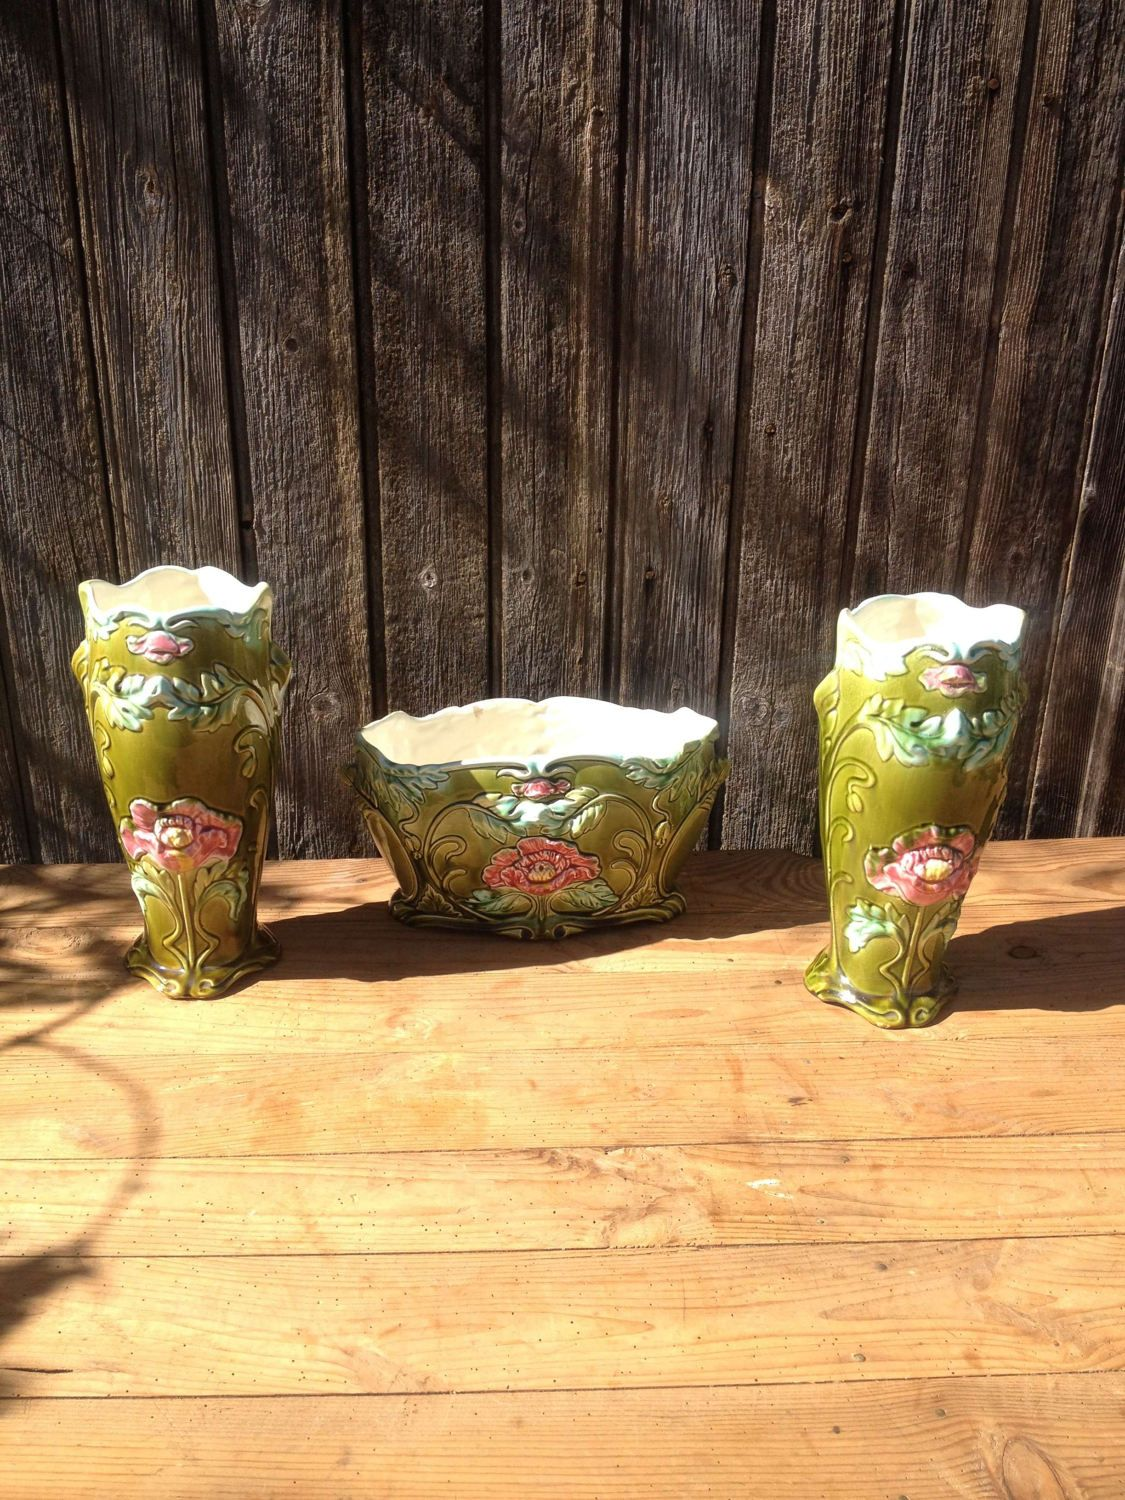 Boutique Art Et Decoration 2 Flowers Vases And 1 Planters In Barbotine Art Nouveau Faïencerie